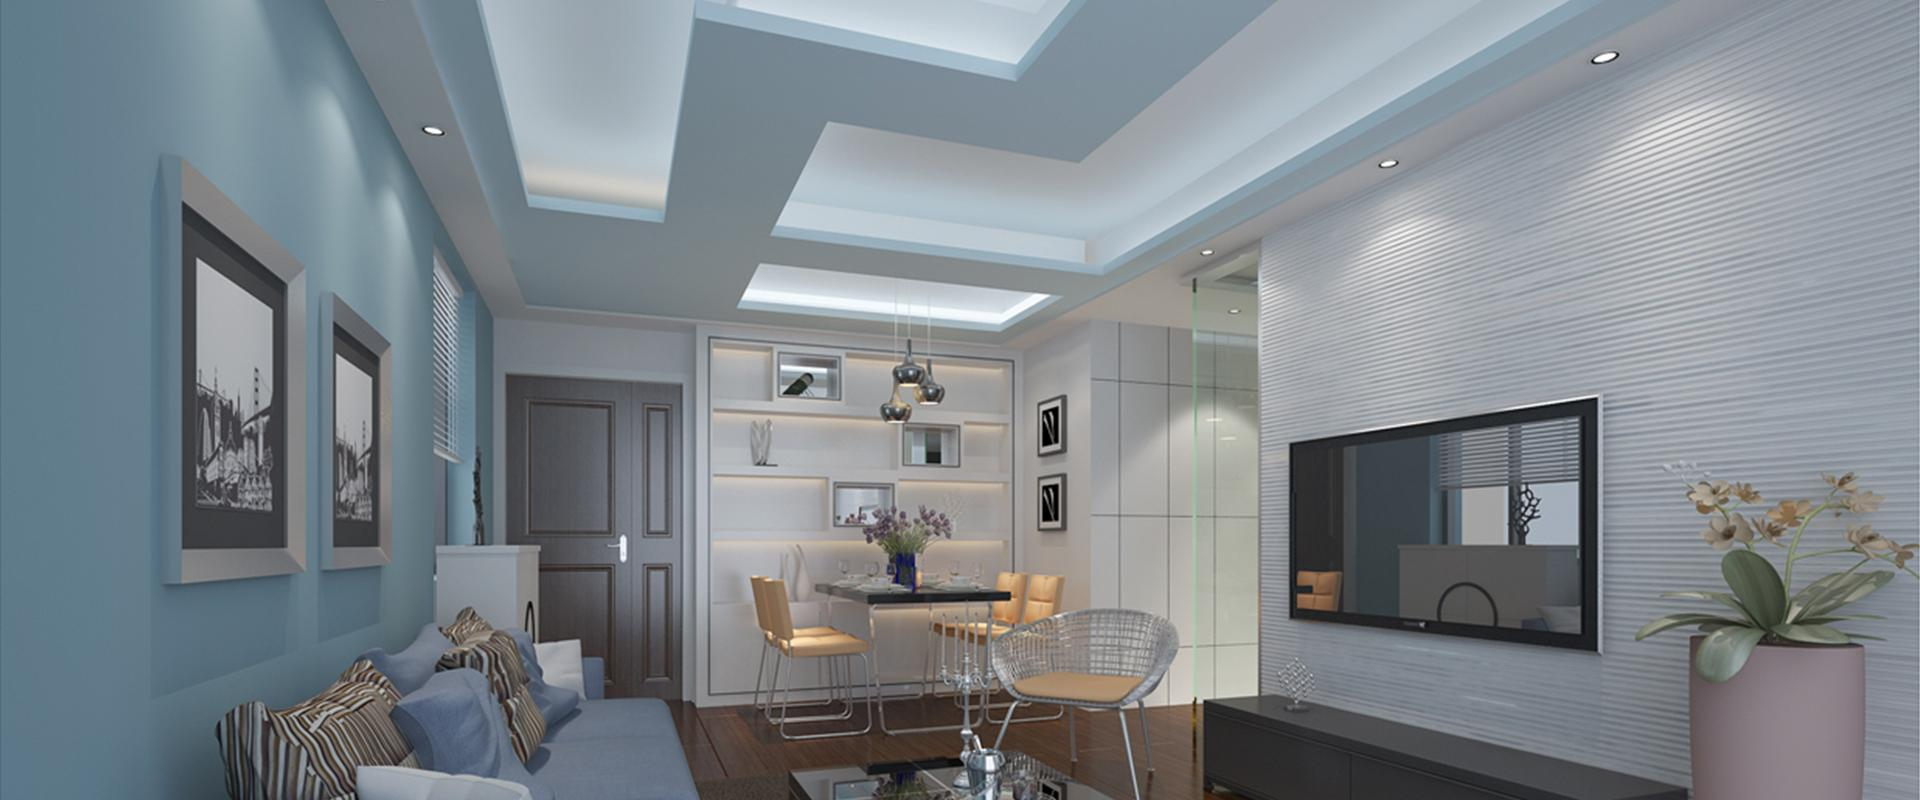 Designer Ceiling - Living Room image